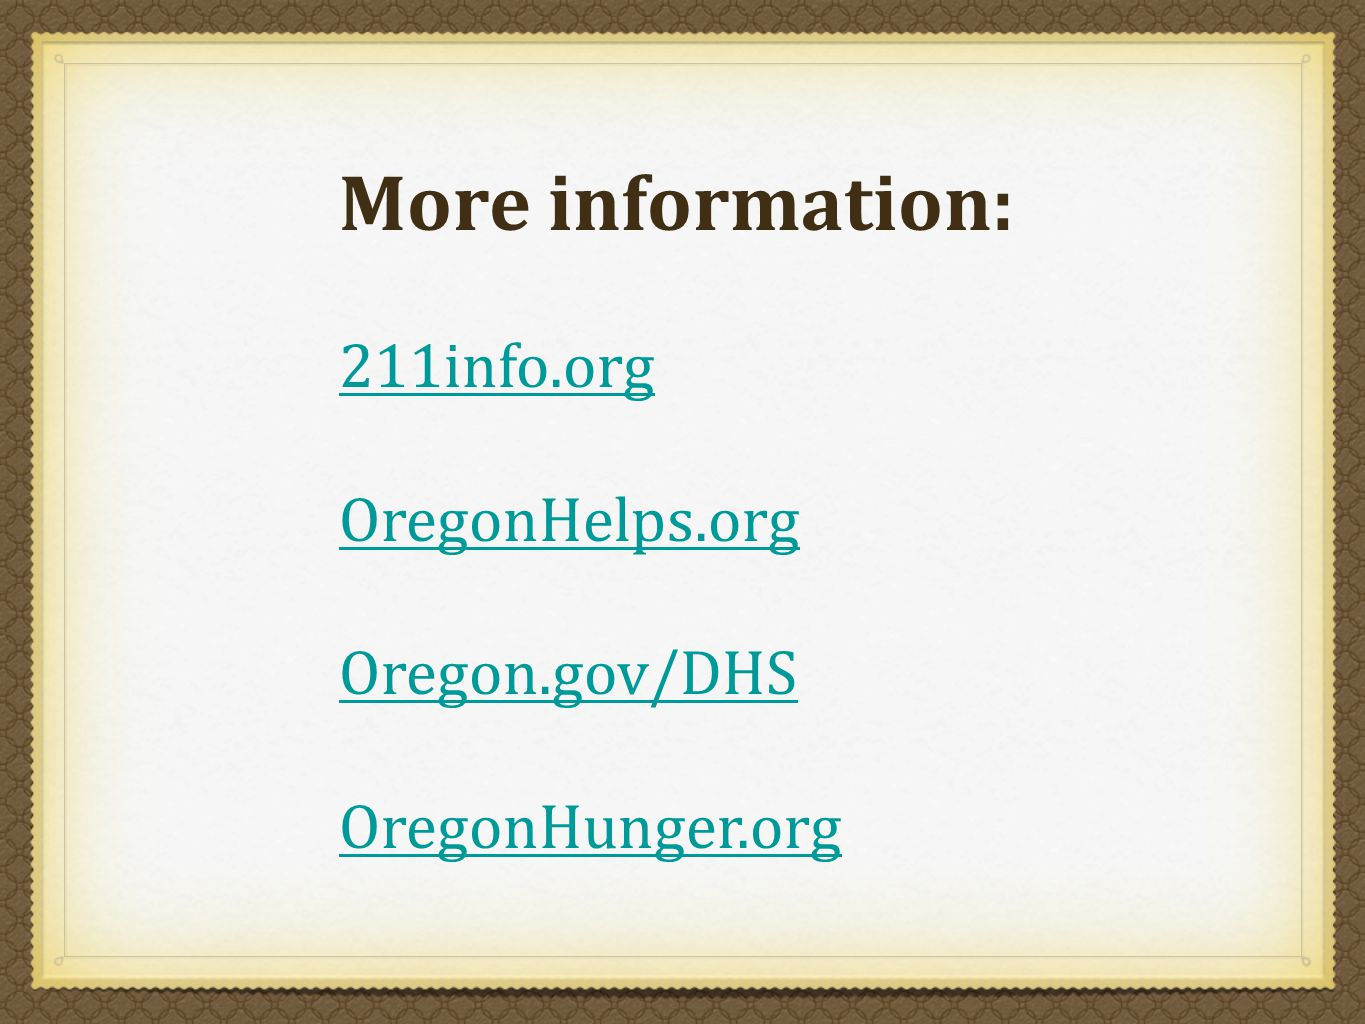 More information: 211info.org OregonHelps.org Oregon.gov/DHS OregonHunger.org